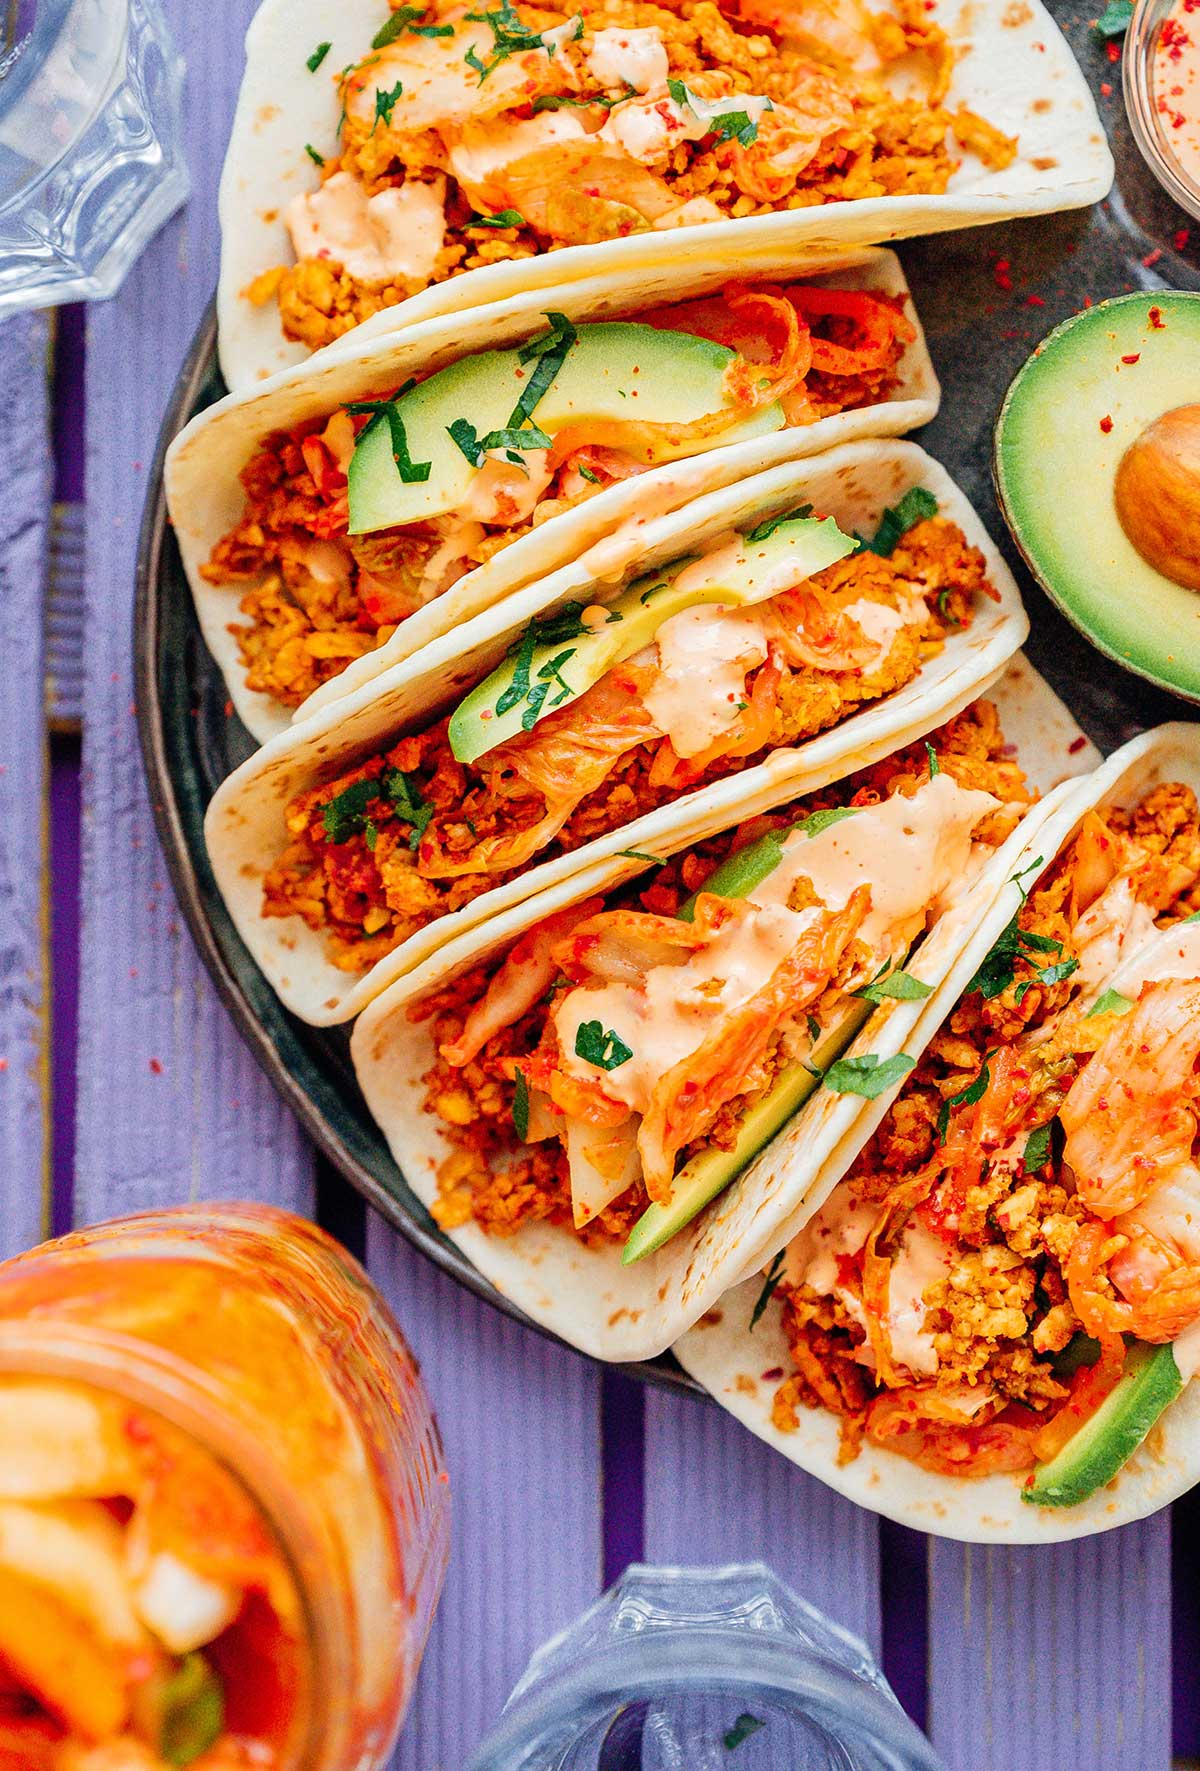 Five kimchi tempeh tacos and half of an avocado on a black plate on a purple table